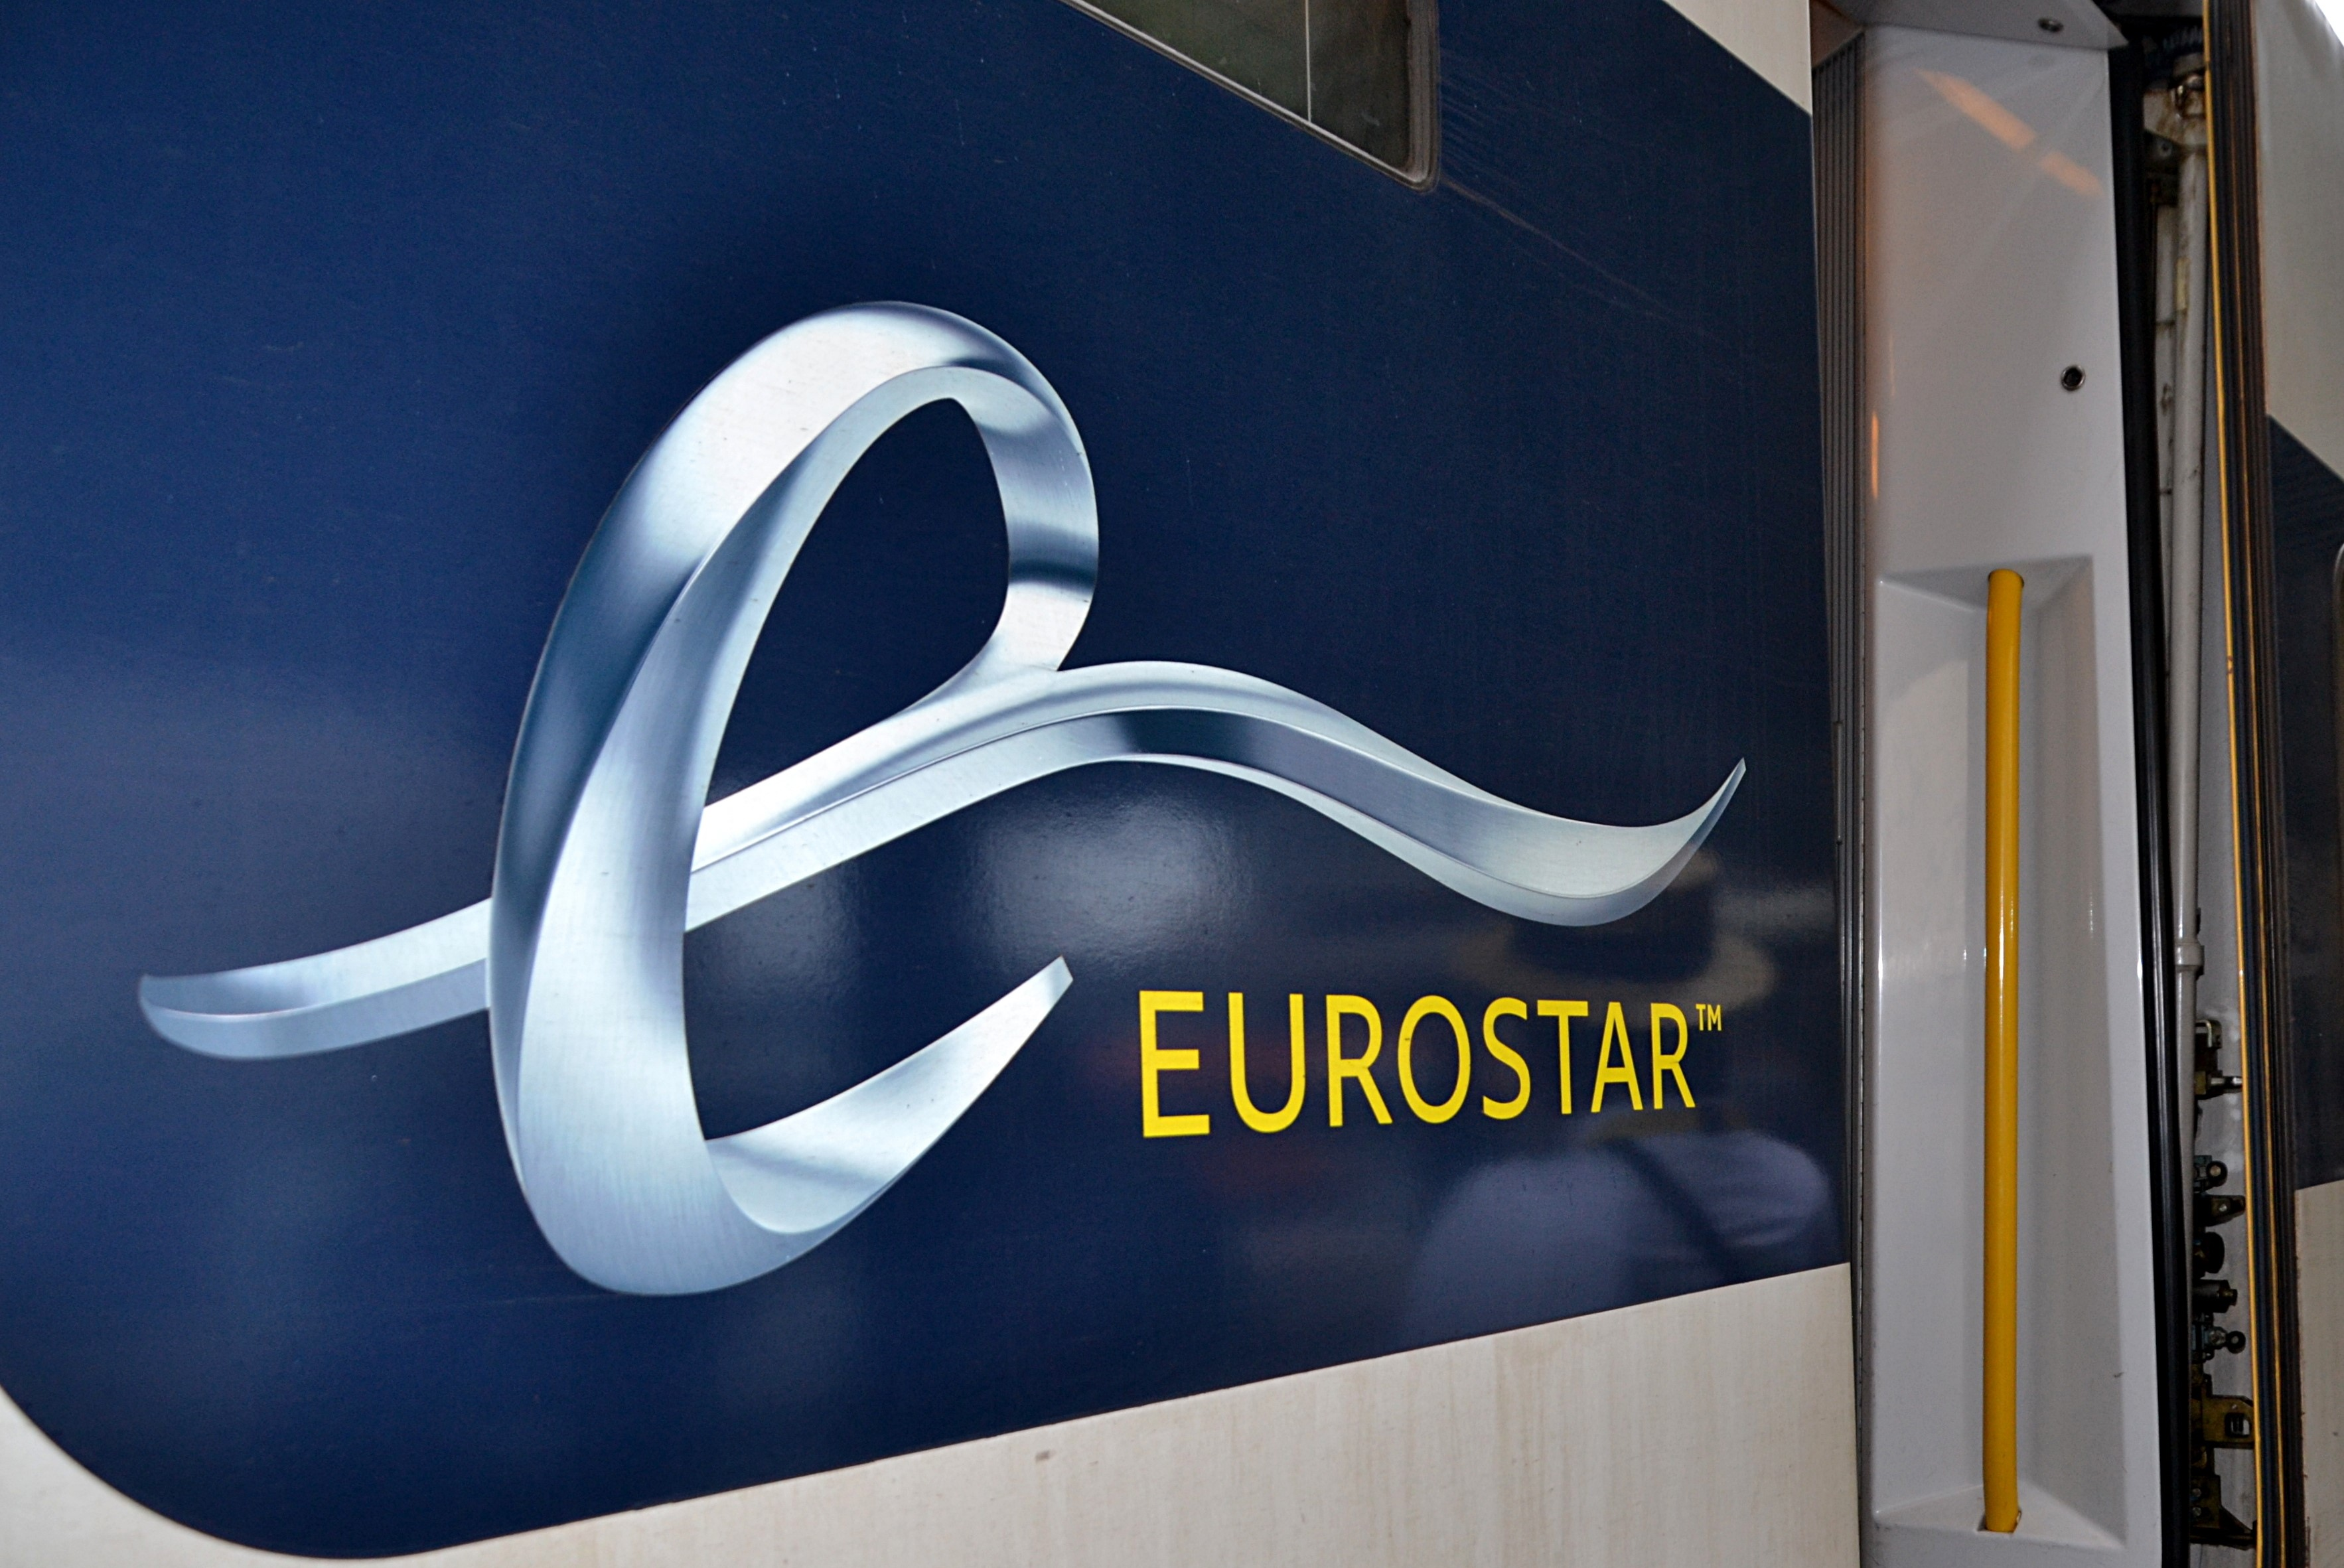 Eurostar secures £250m financial support package